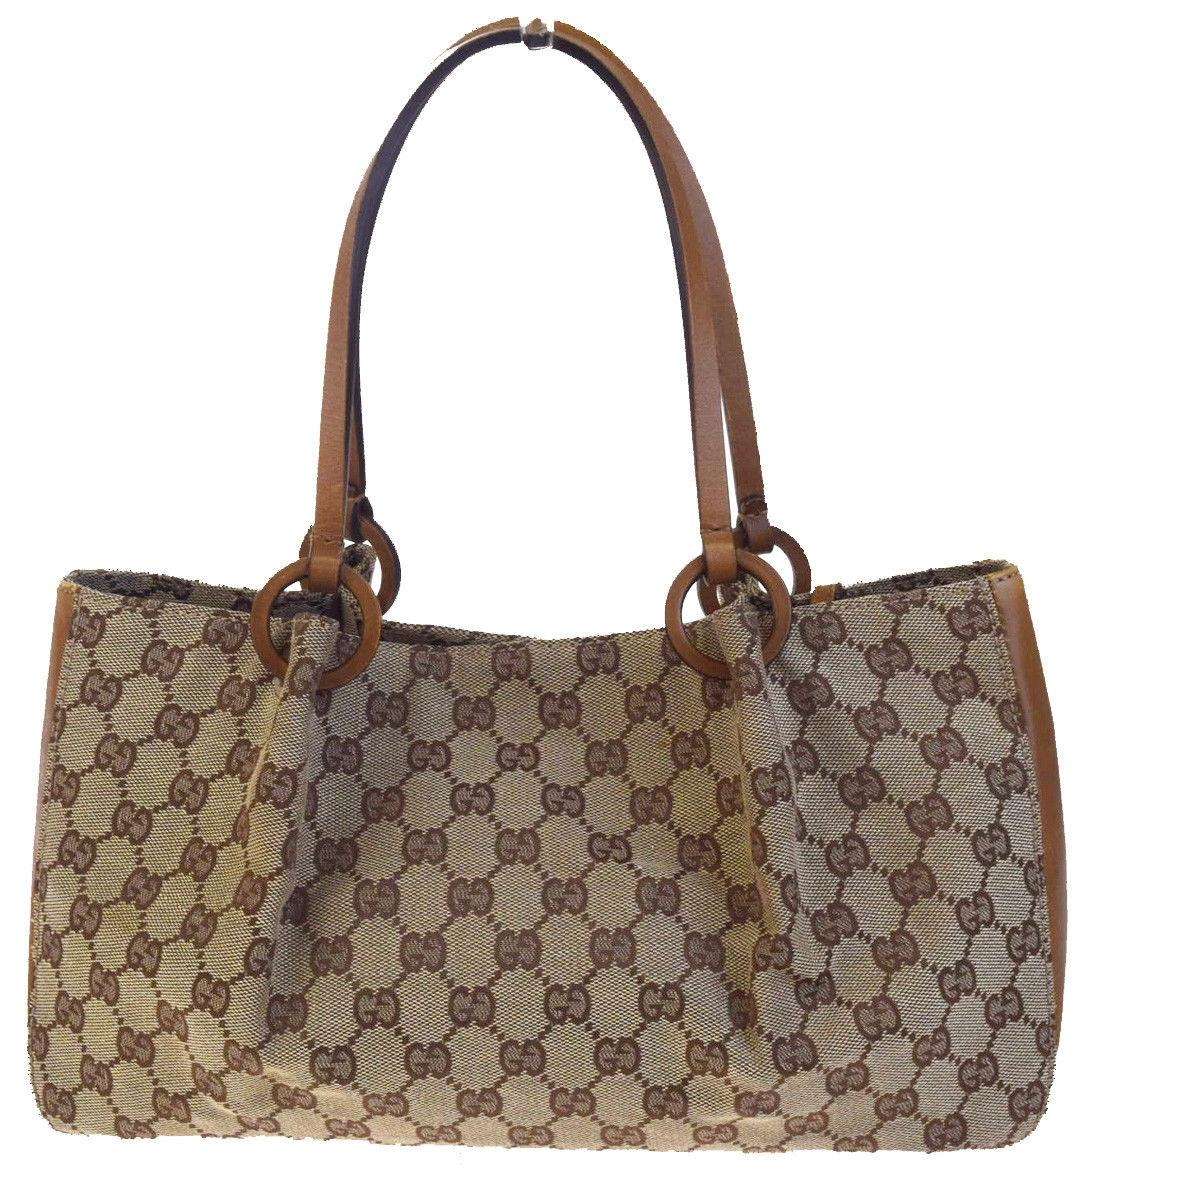 gucci bags prices. gucci shoulder bag bags prices